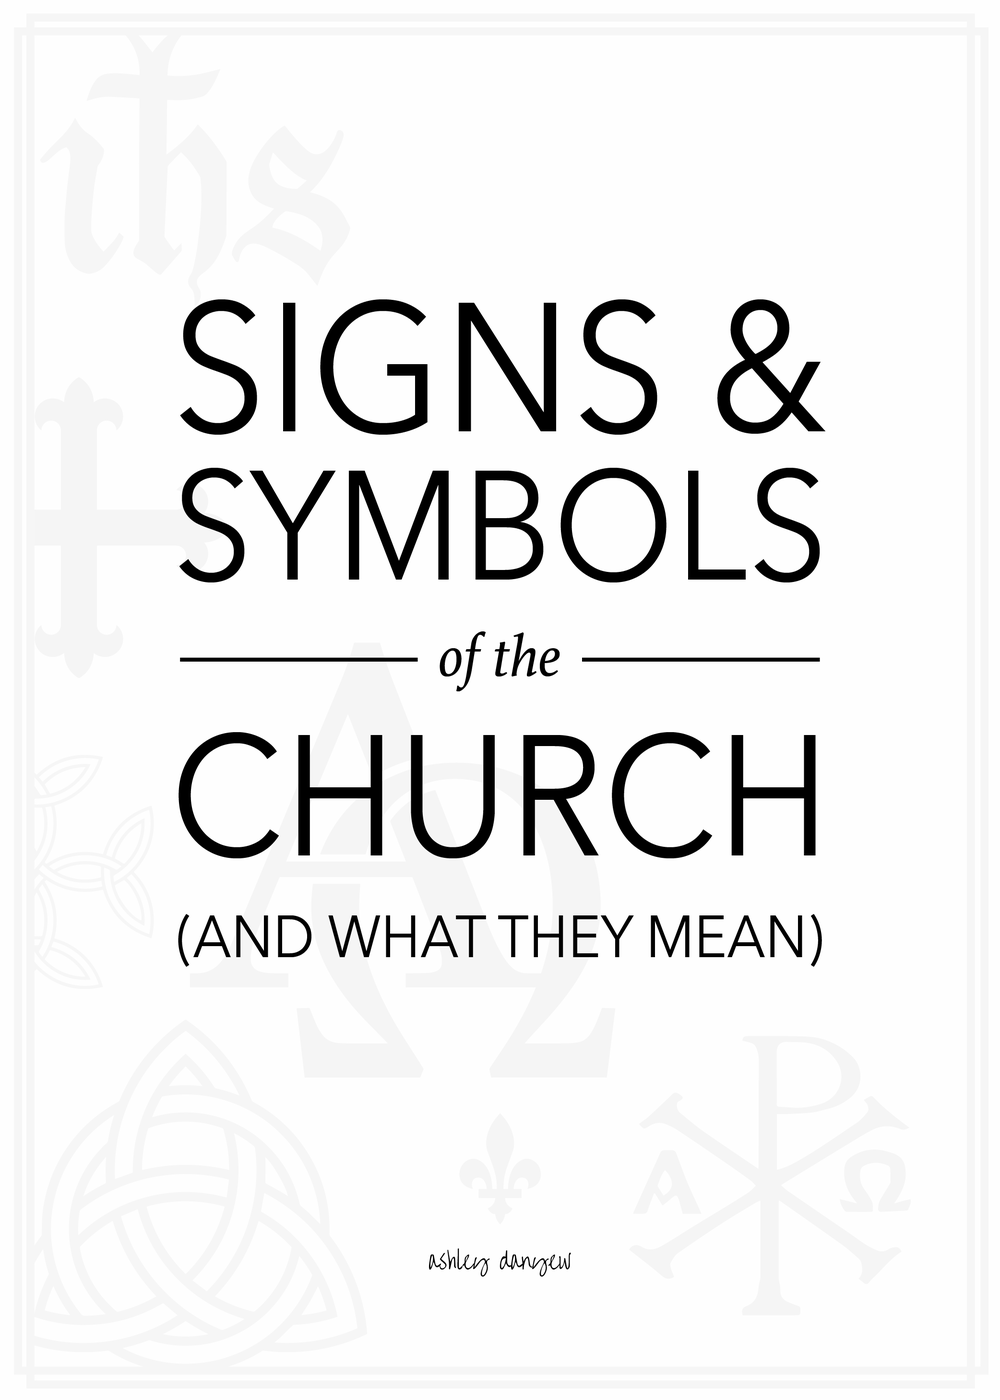 Signs & Symbols of the Church Year (and What They Mean)